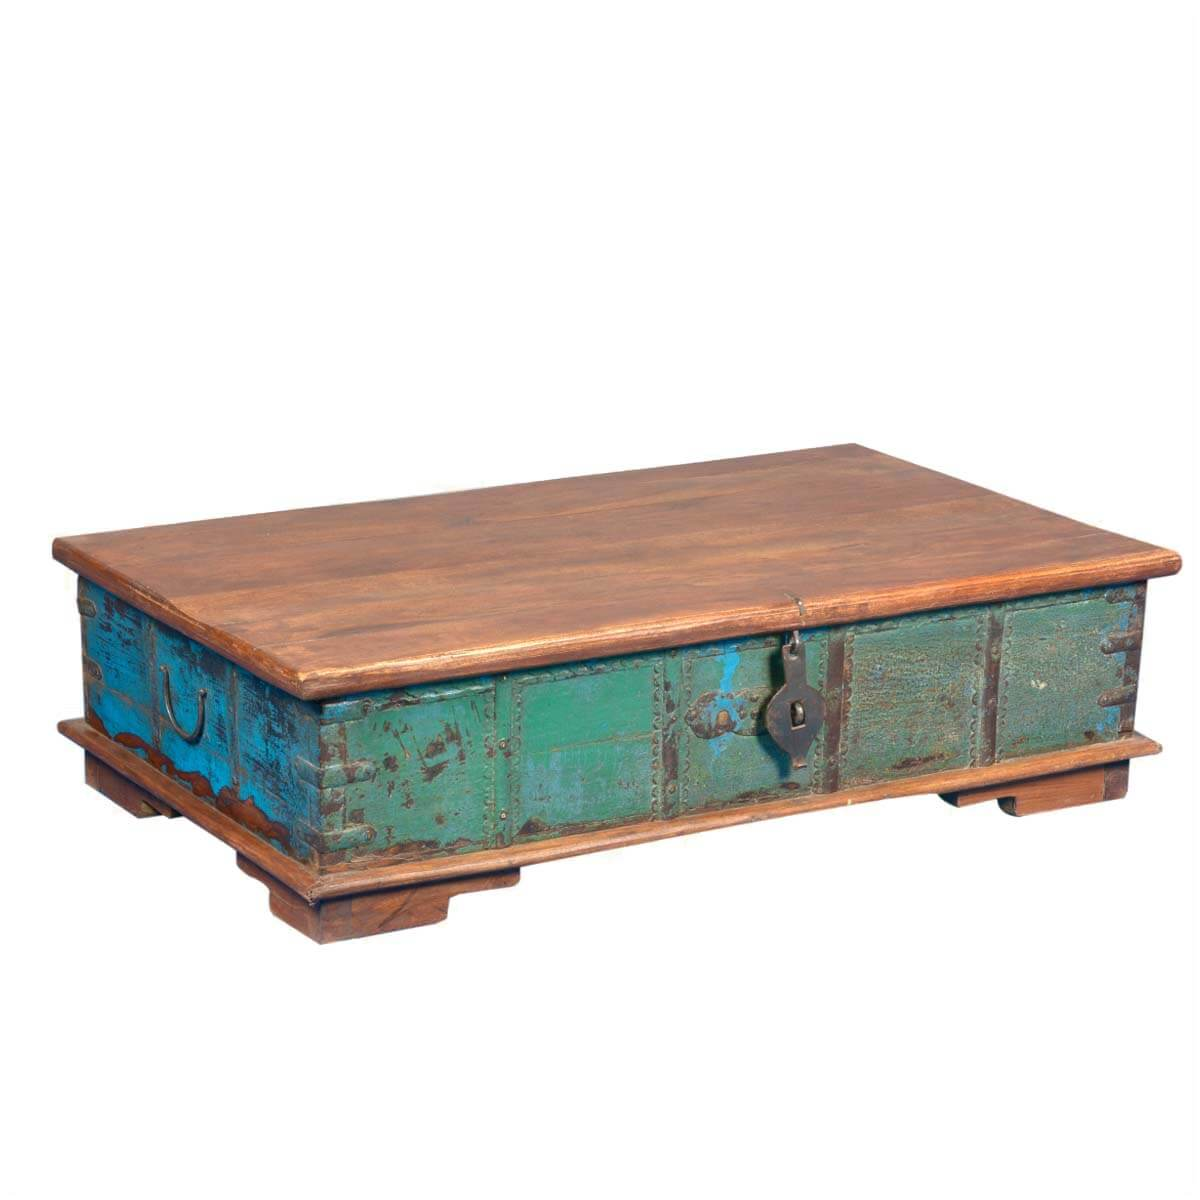 Wood Coffee Table With Storage Emerald Treasure Reclaimed Wood Coffee Table Storage Chest